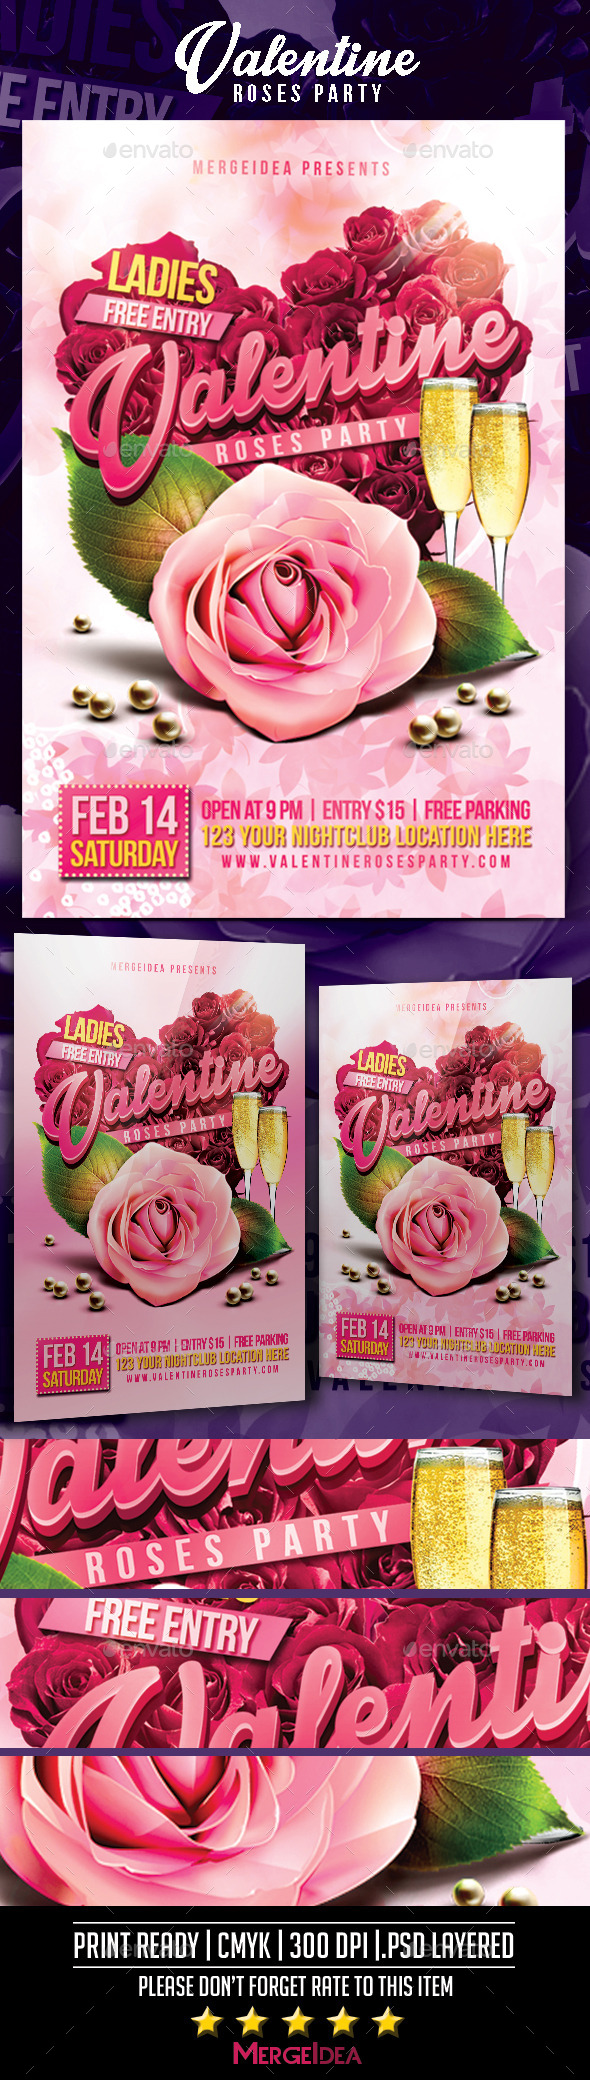 GraphicRiver Valentine Roses Party Flyer 9956673